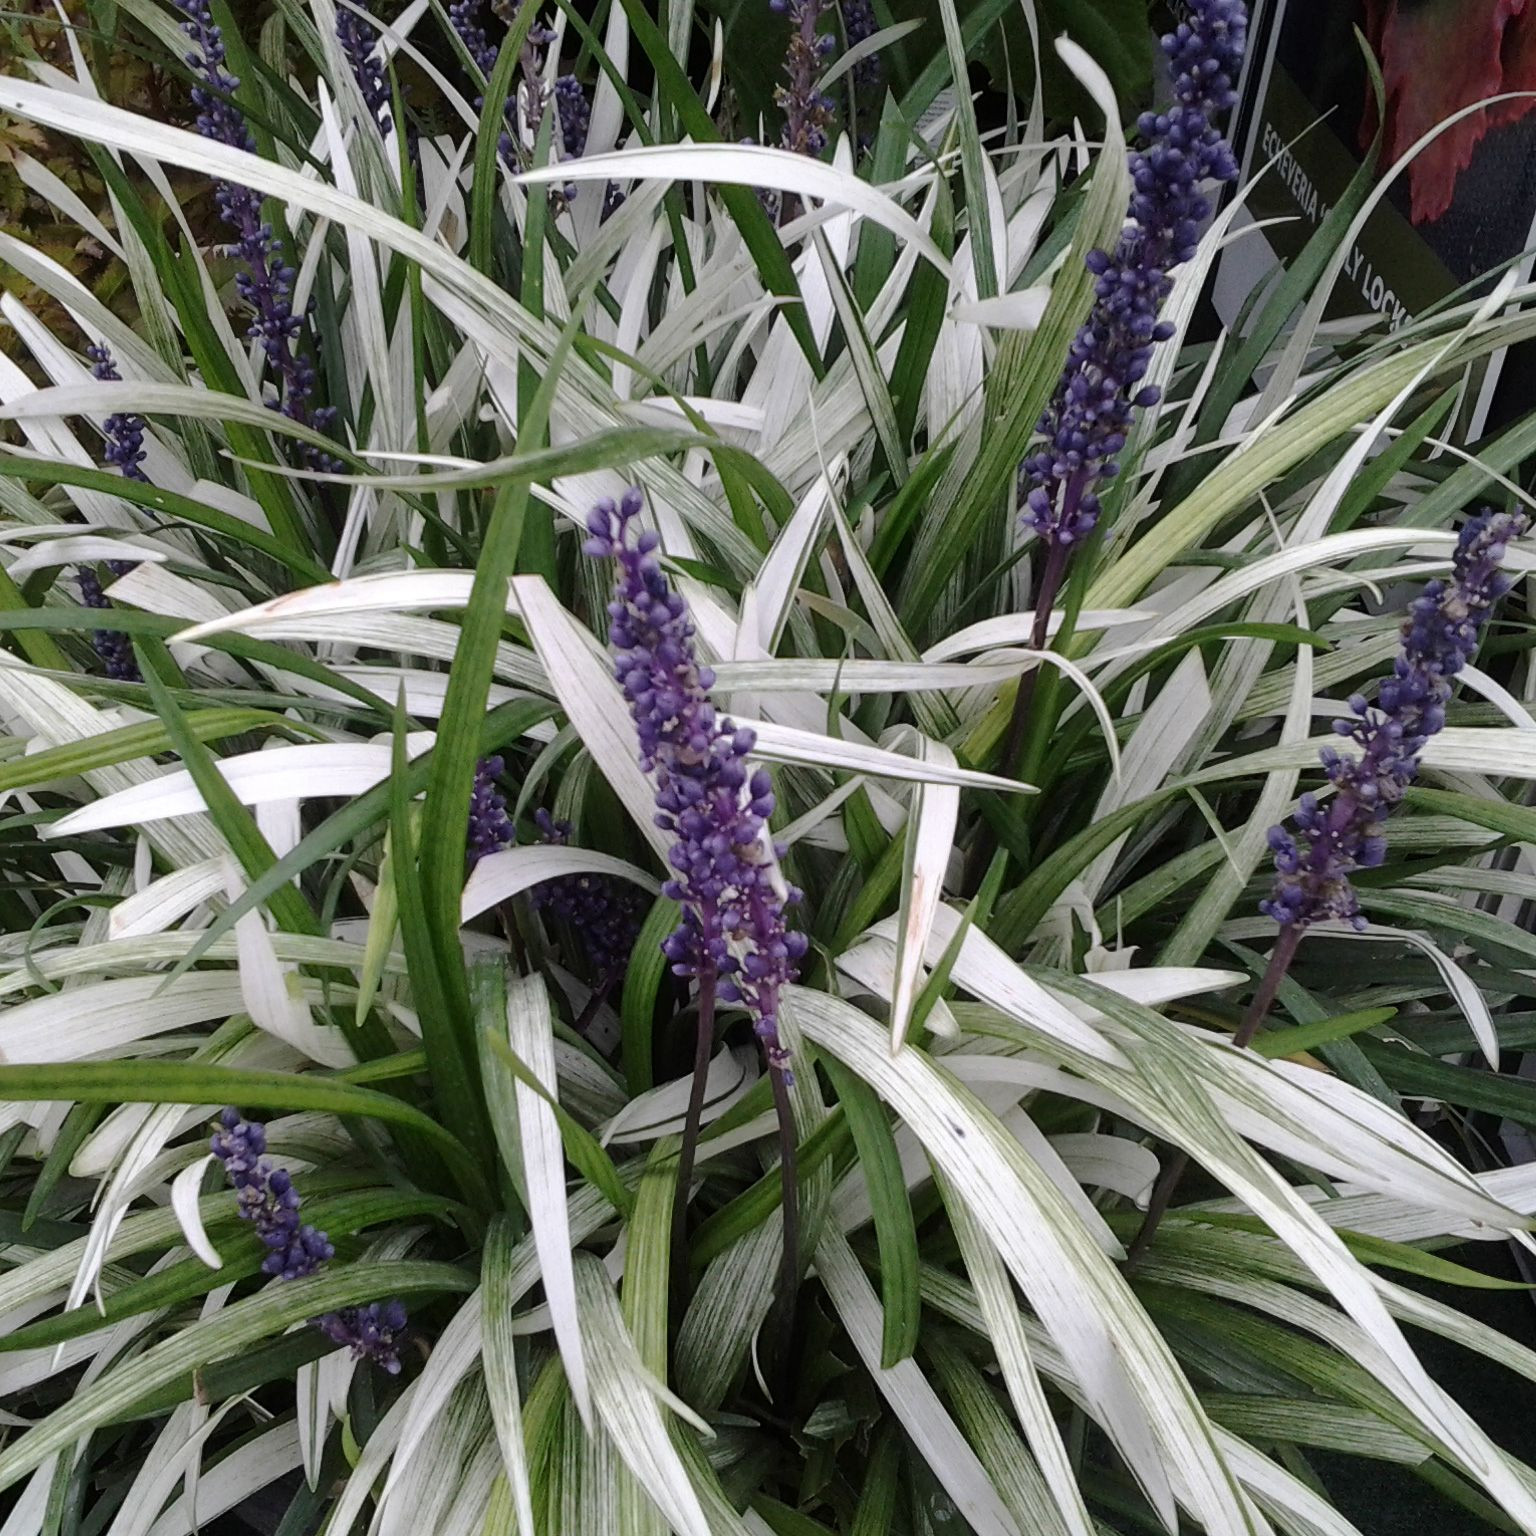 Buy lily turf Liriope muscari Okina PBR Delivery by Waitrose Garden in association with Crocus